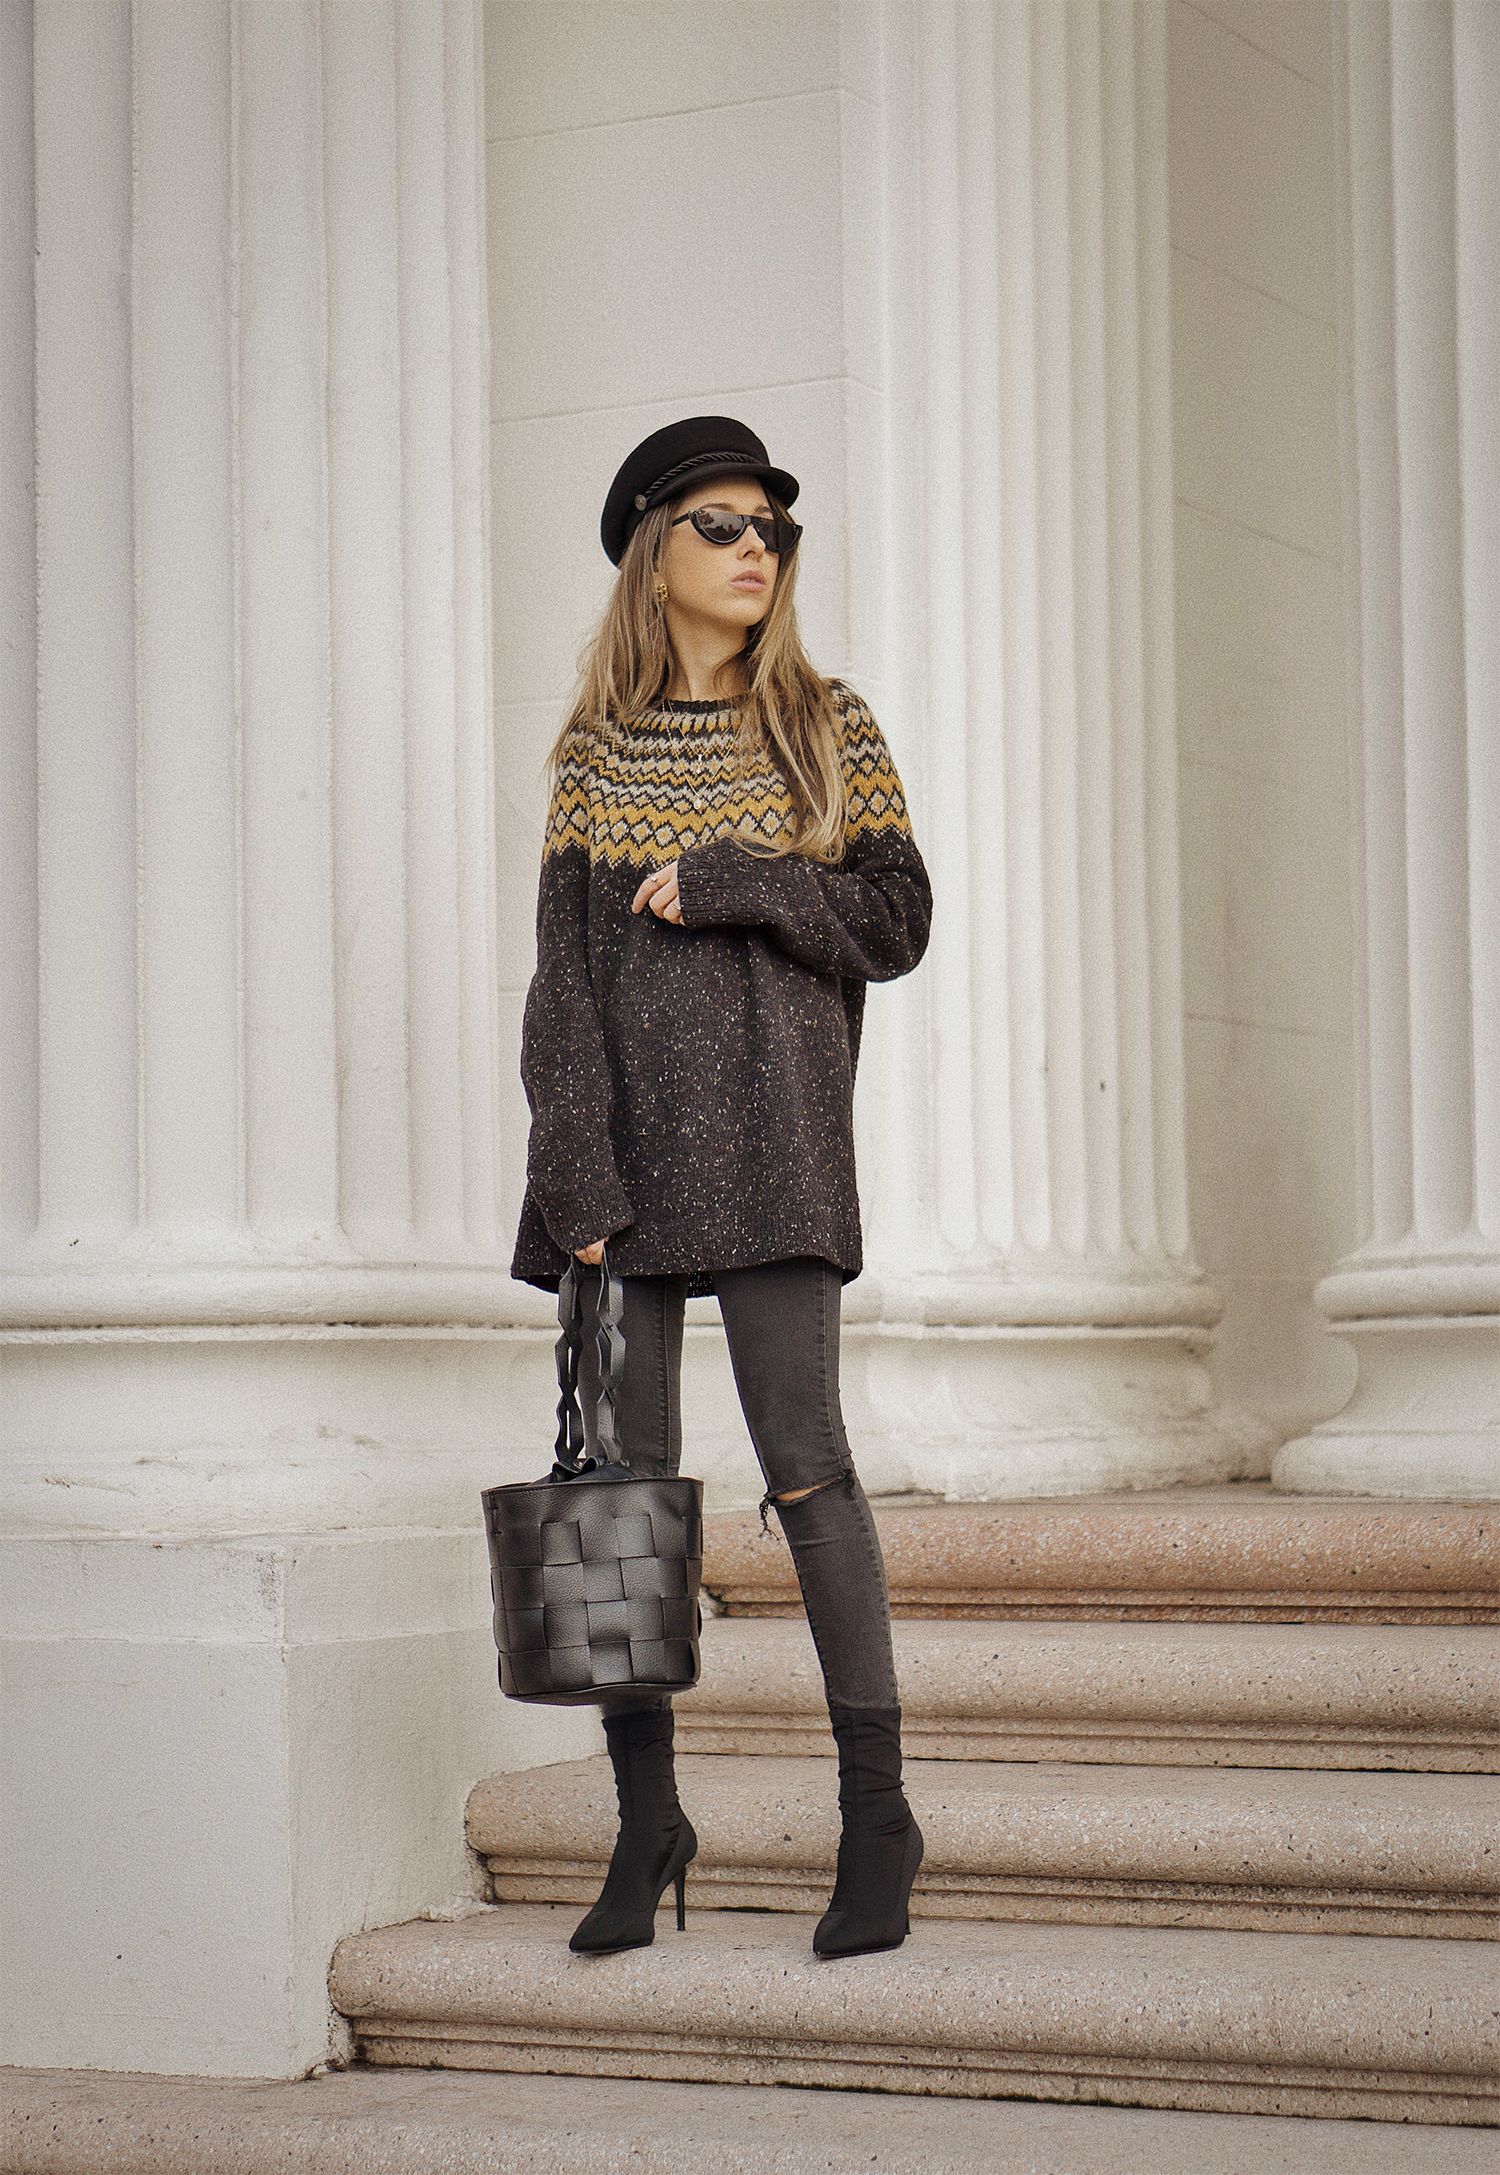 handmade_lopapeysa_intoclothing_jacquard_sweater_streetstyle_thewhiteocean_lenajuice_02